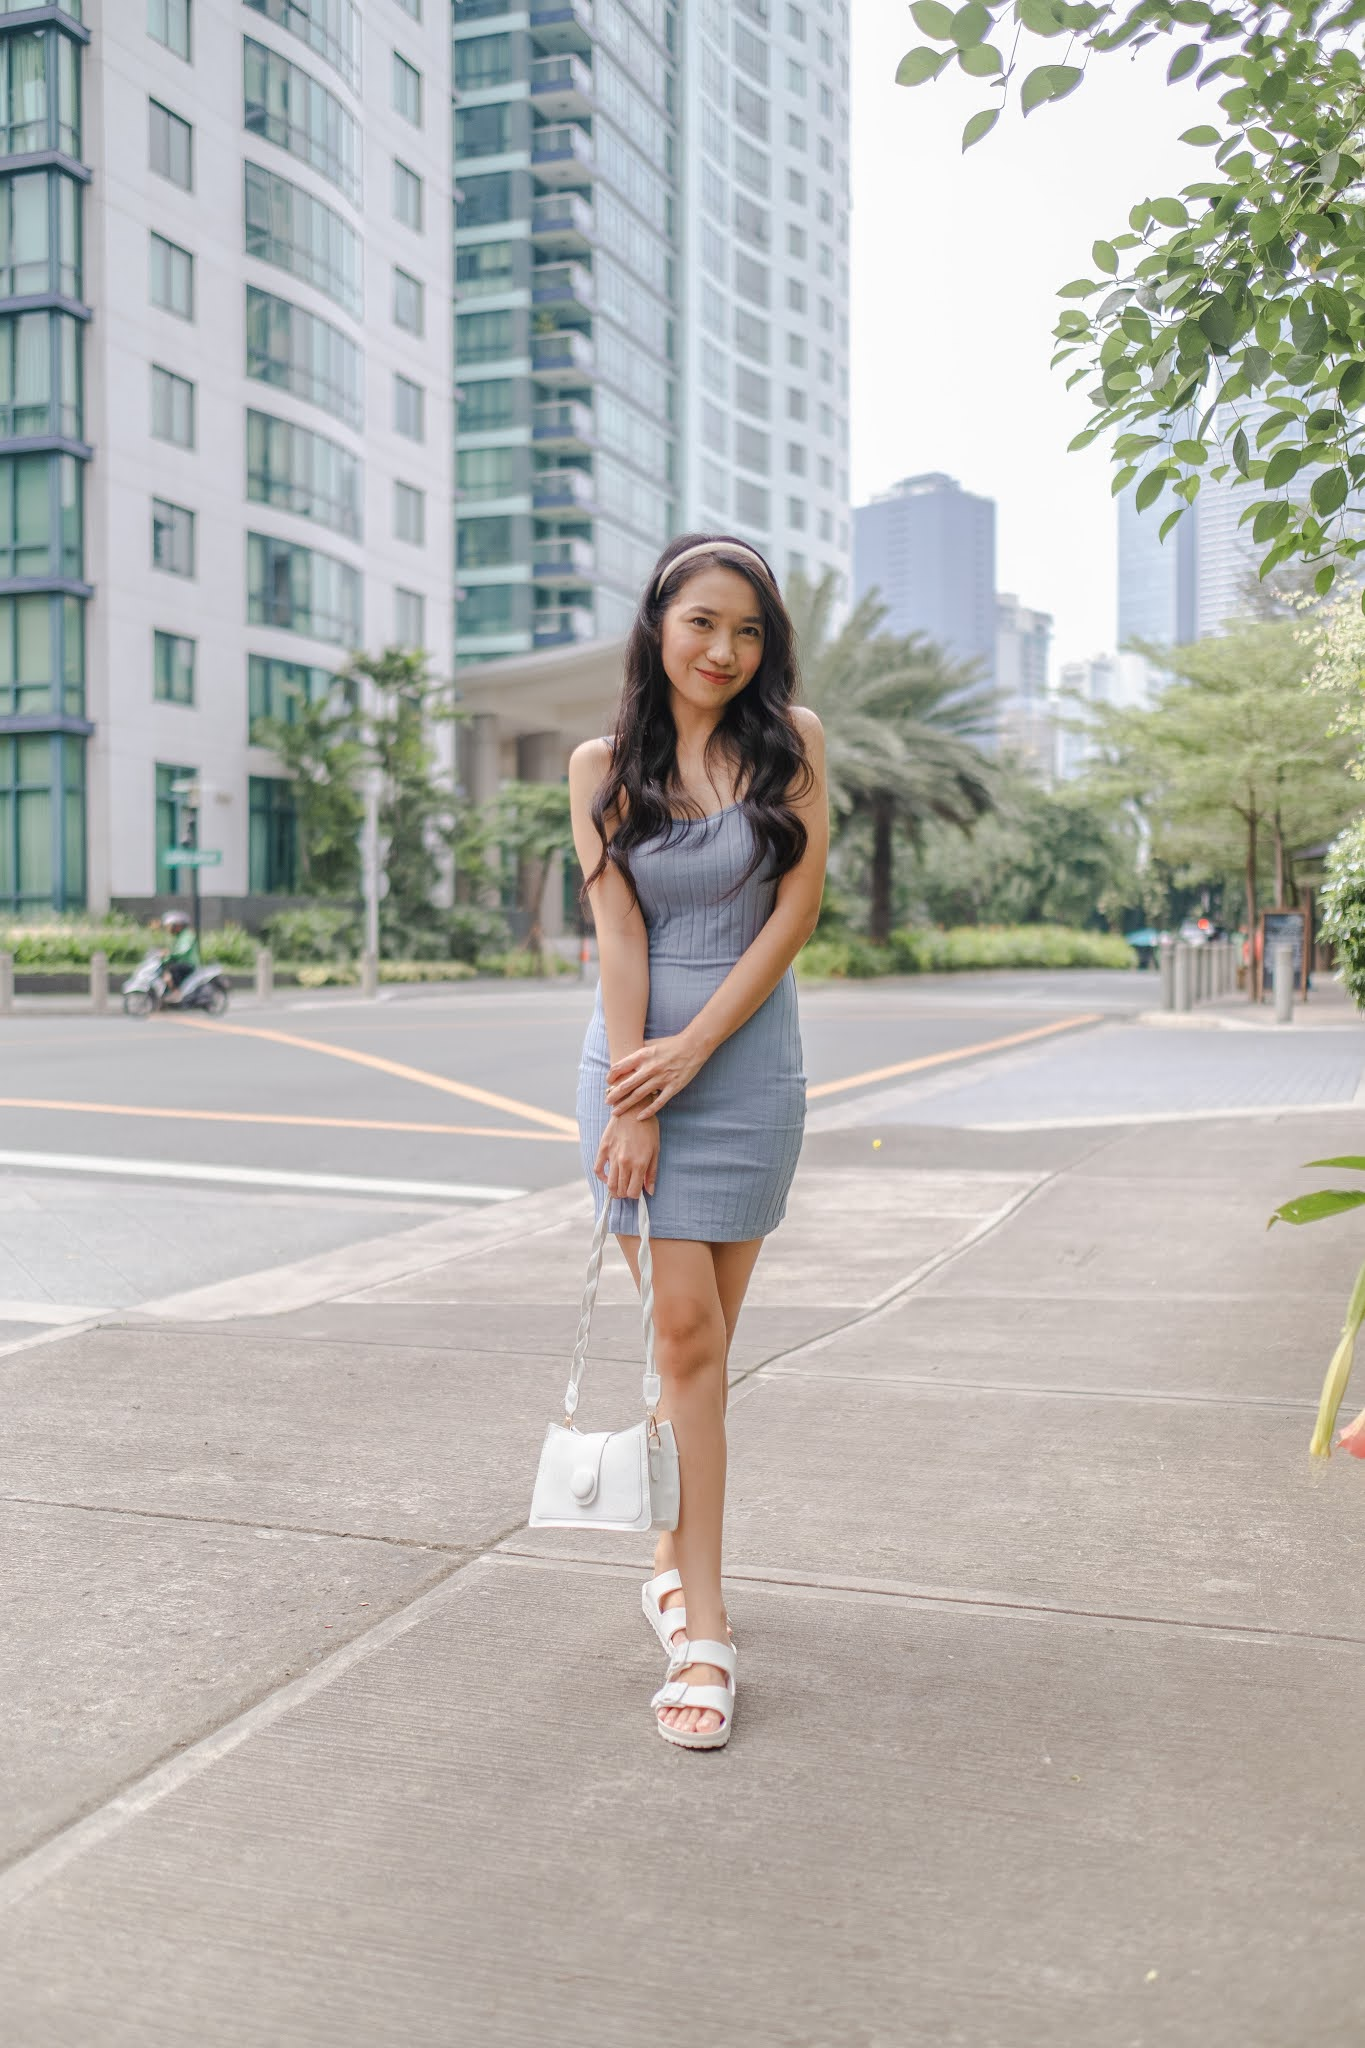 Cielo Fernando at Rockwell Wearing Blue Dress and White Bag